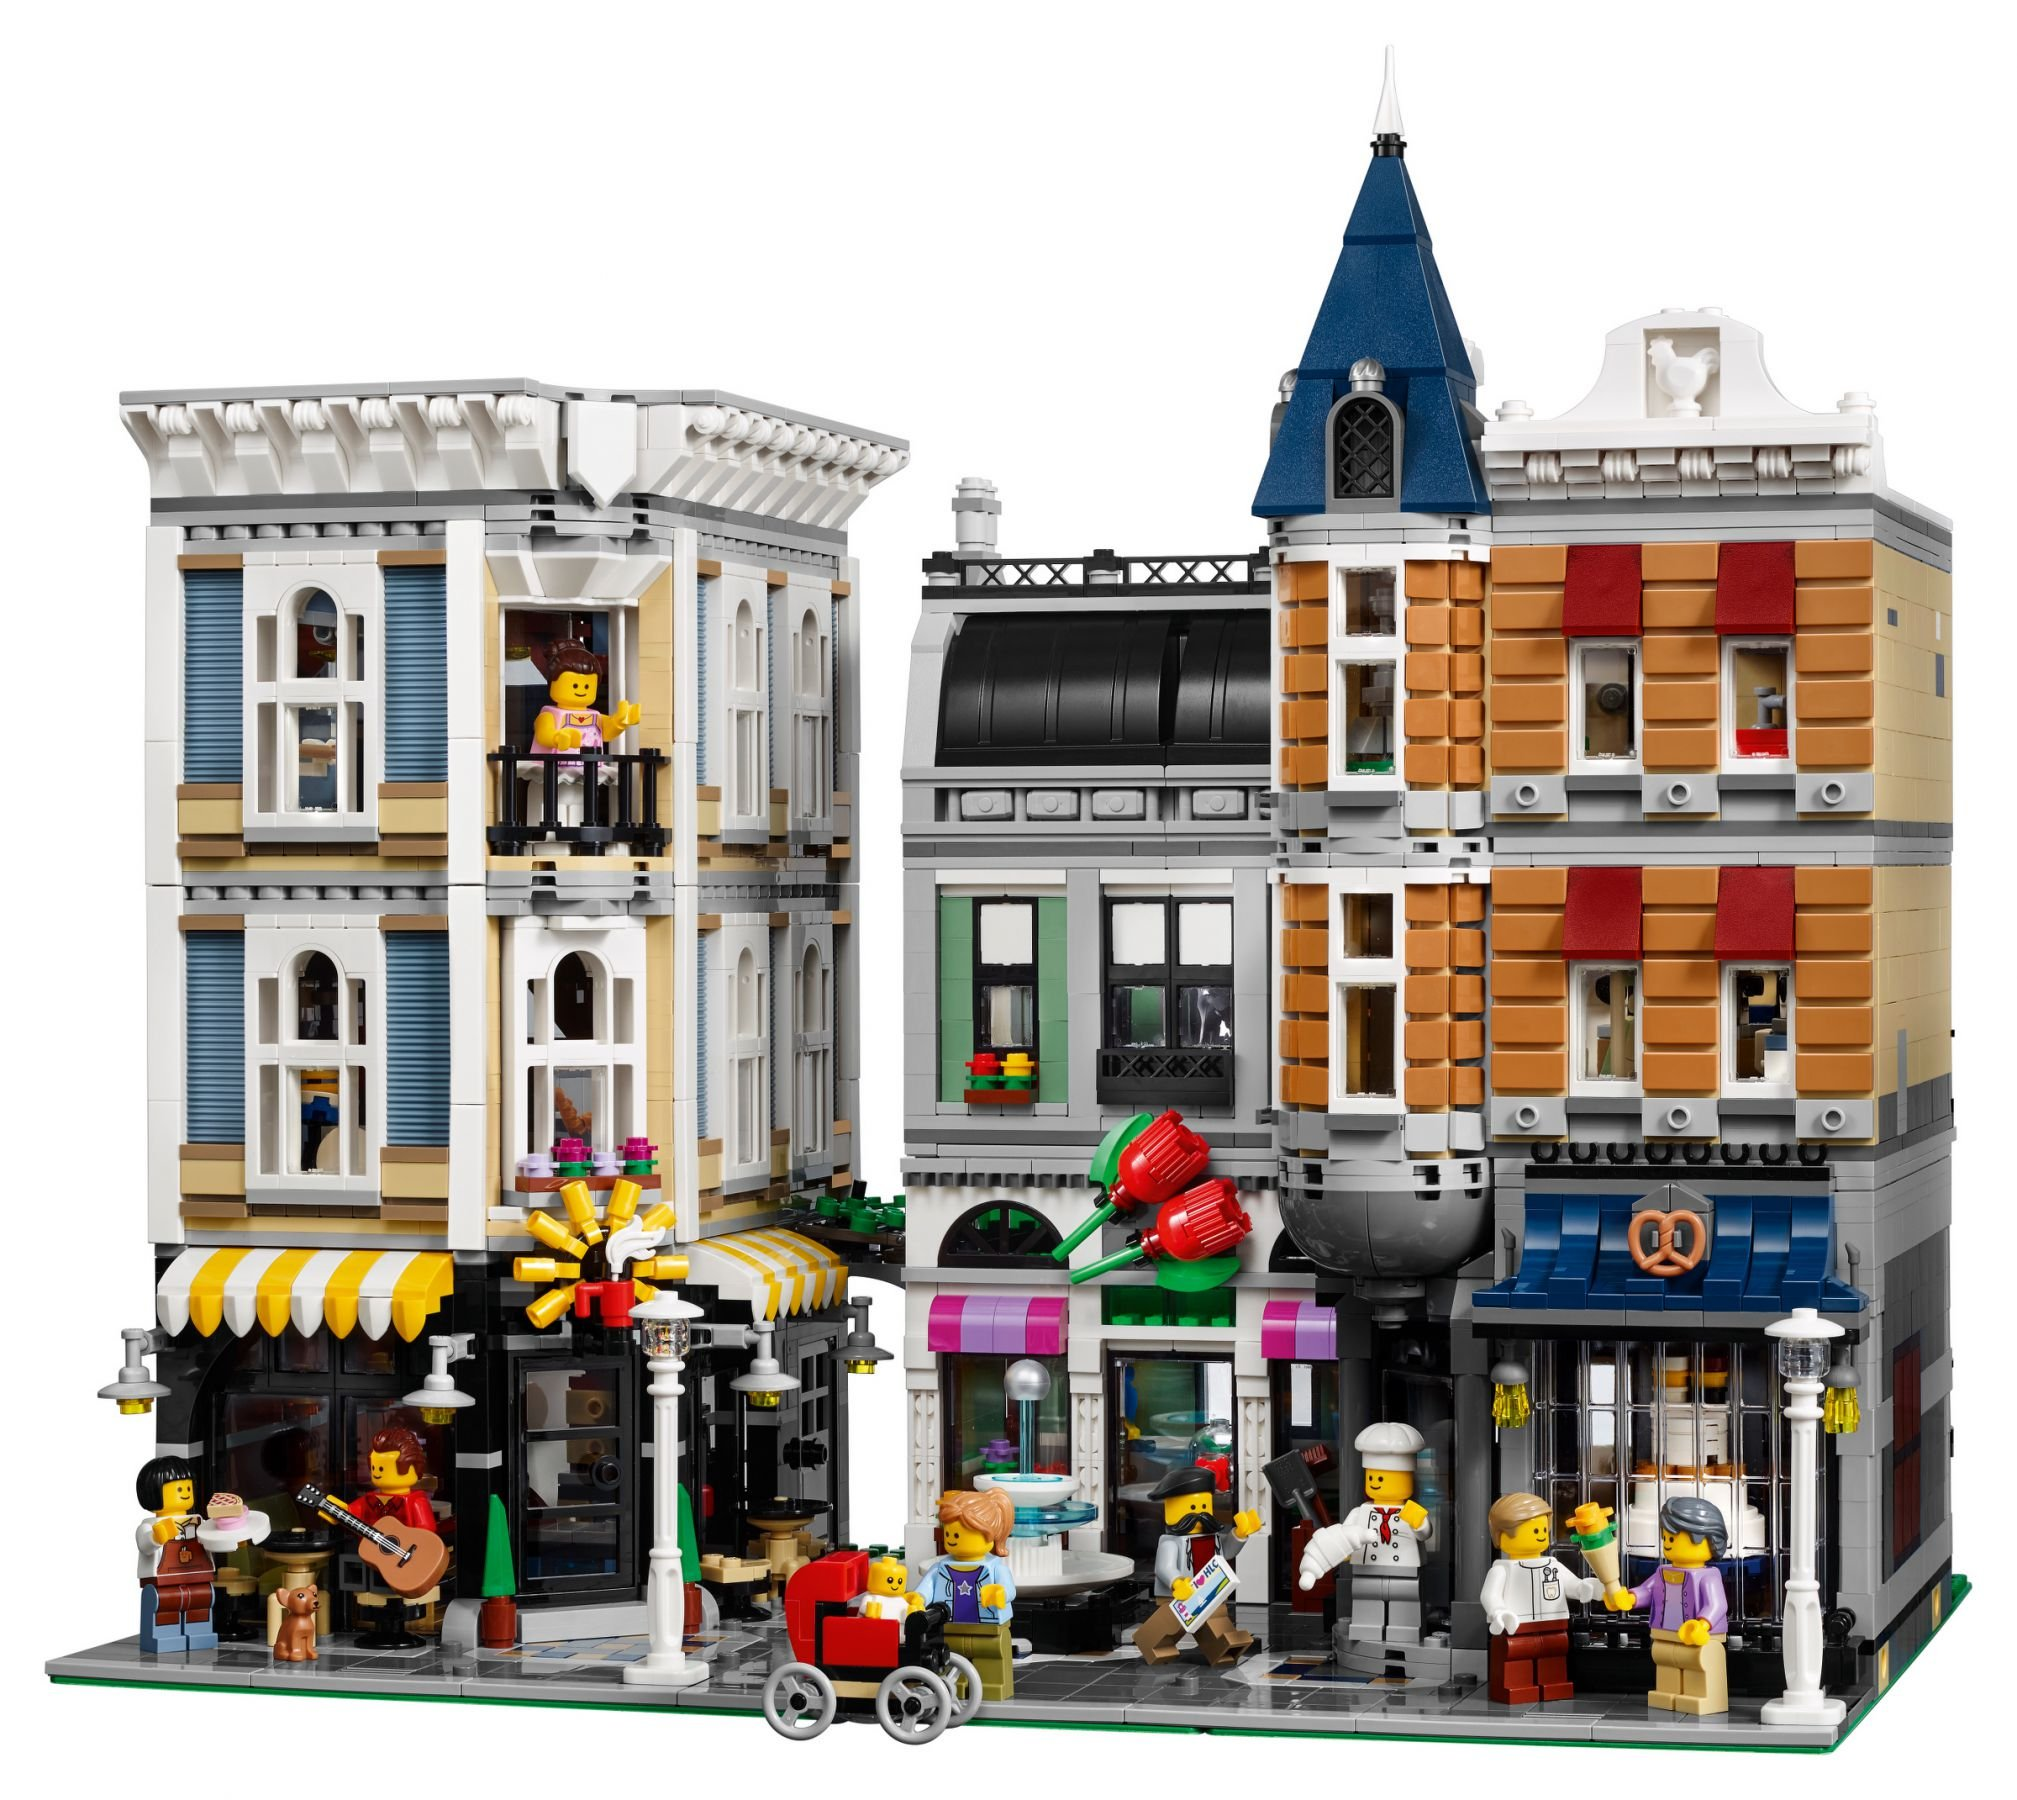 LEGO Advanced Models 10255 Assembly Square / Stadtleben LEGO_10255_alt2.jpg